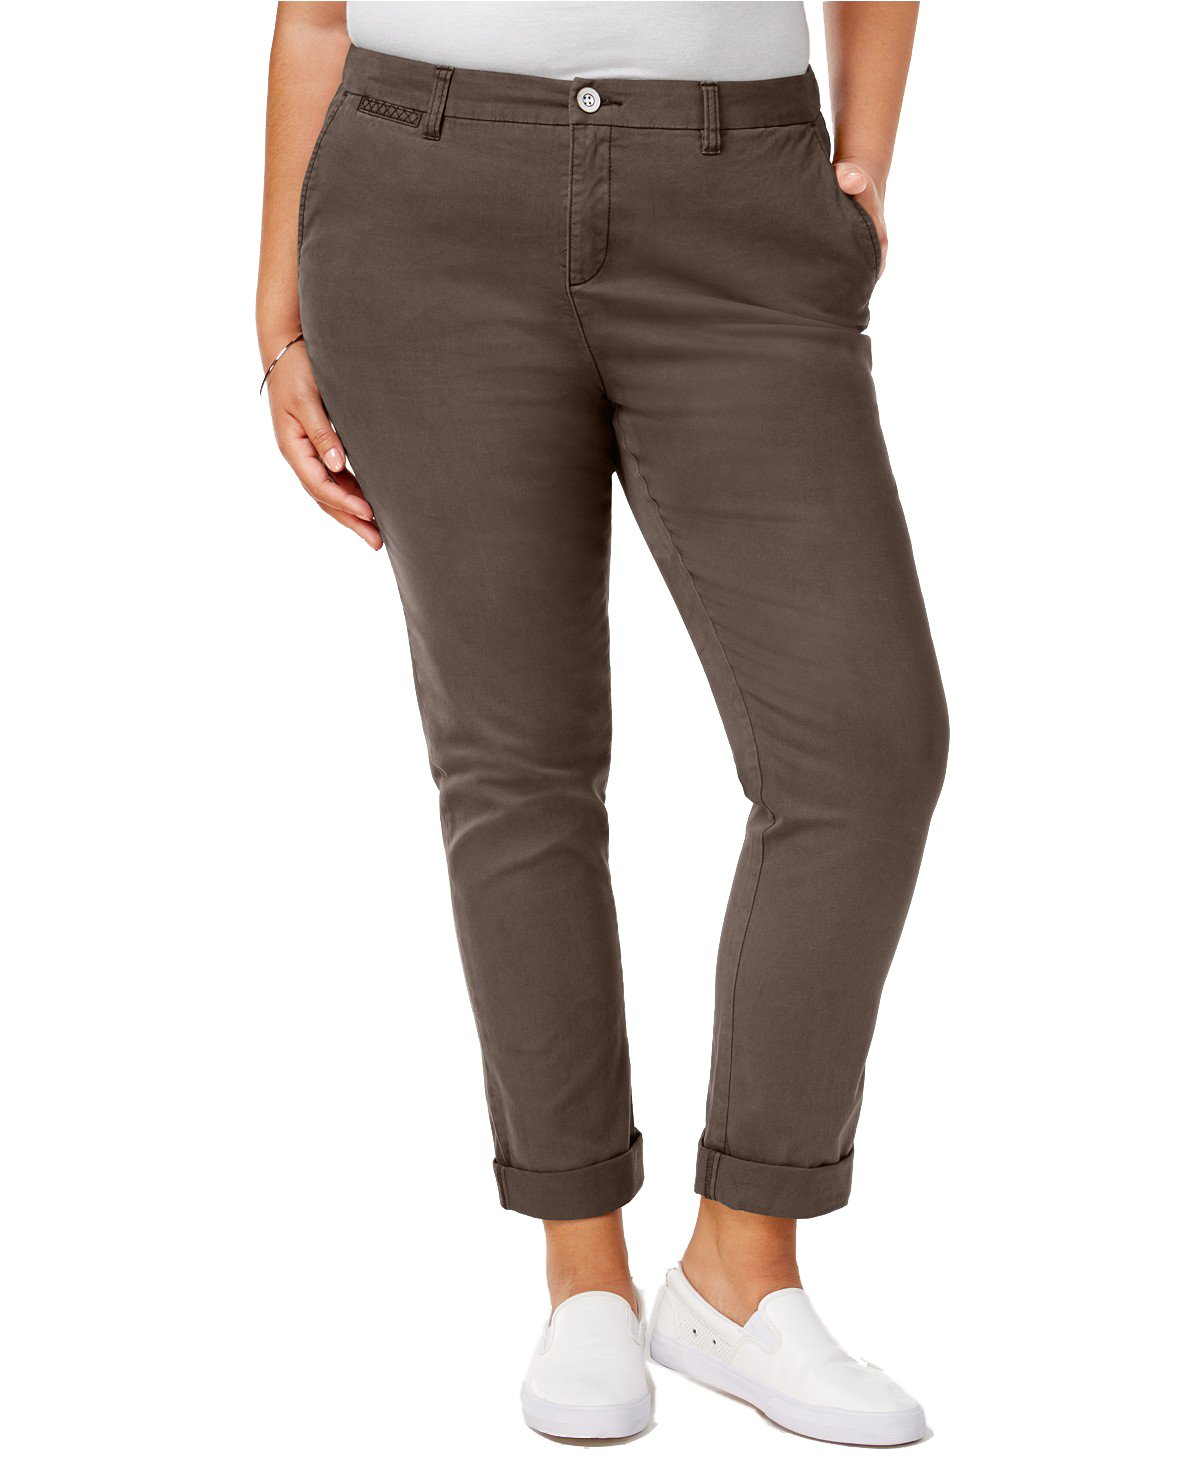 Style & Co. Womens Plus Twill Embroidered Cropped Pants Brown 16W by Style & Co.